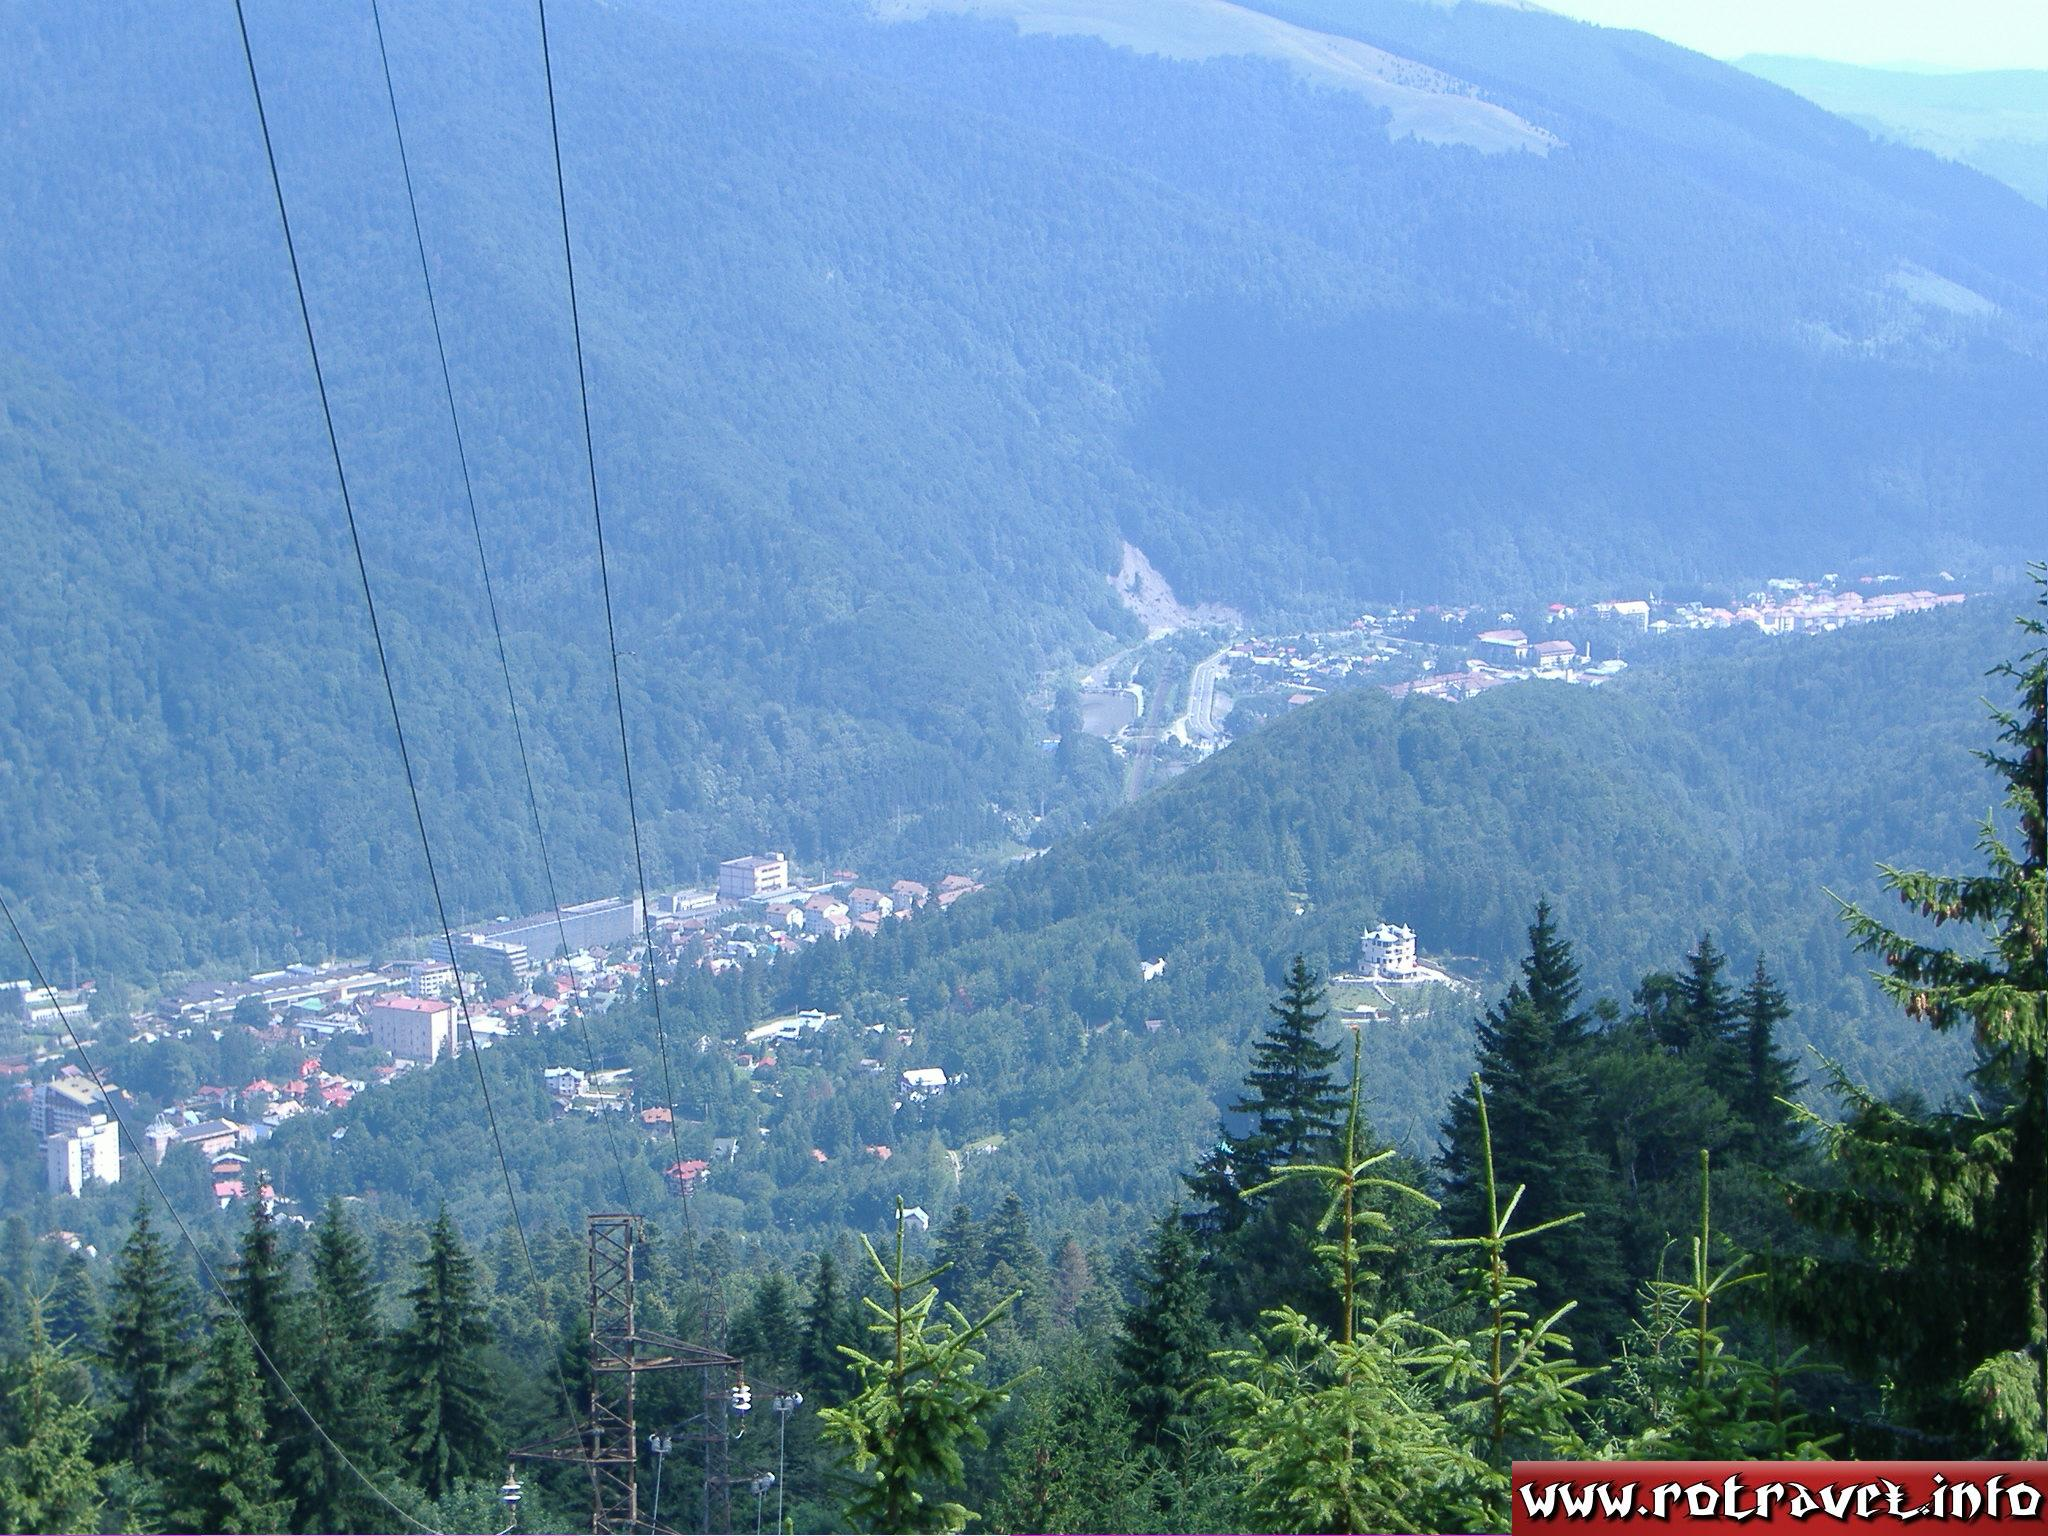 Down you can see the city Sinaia